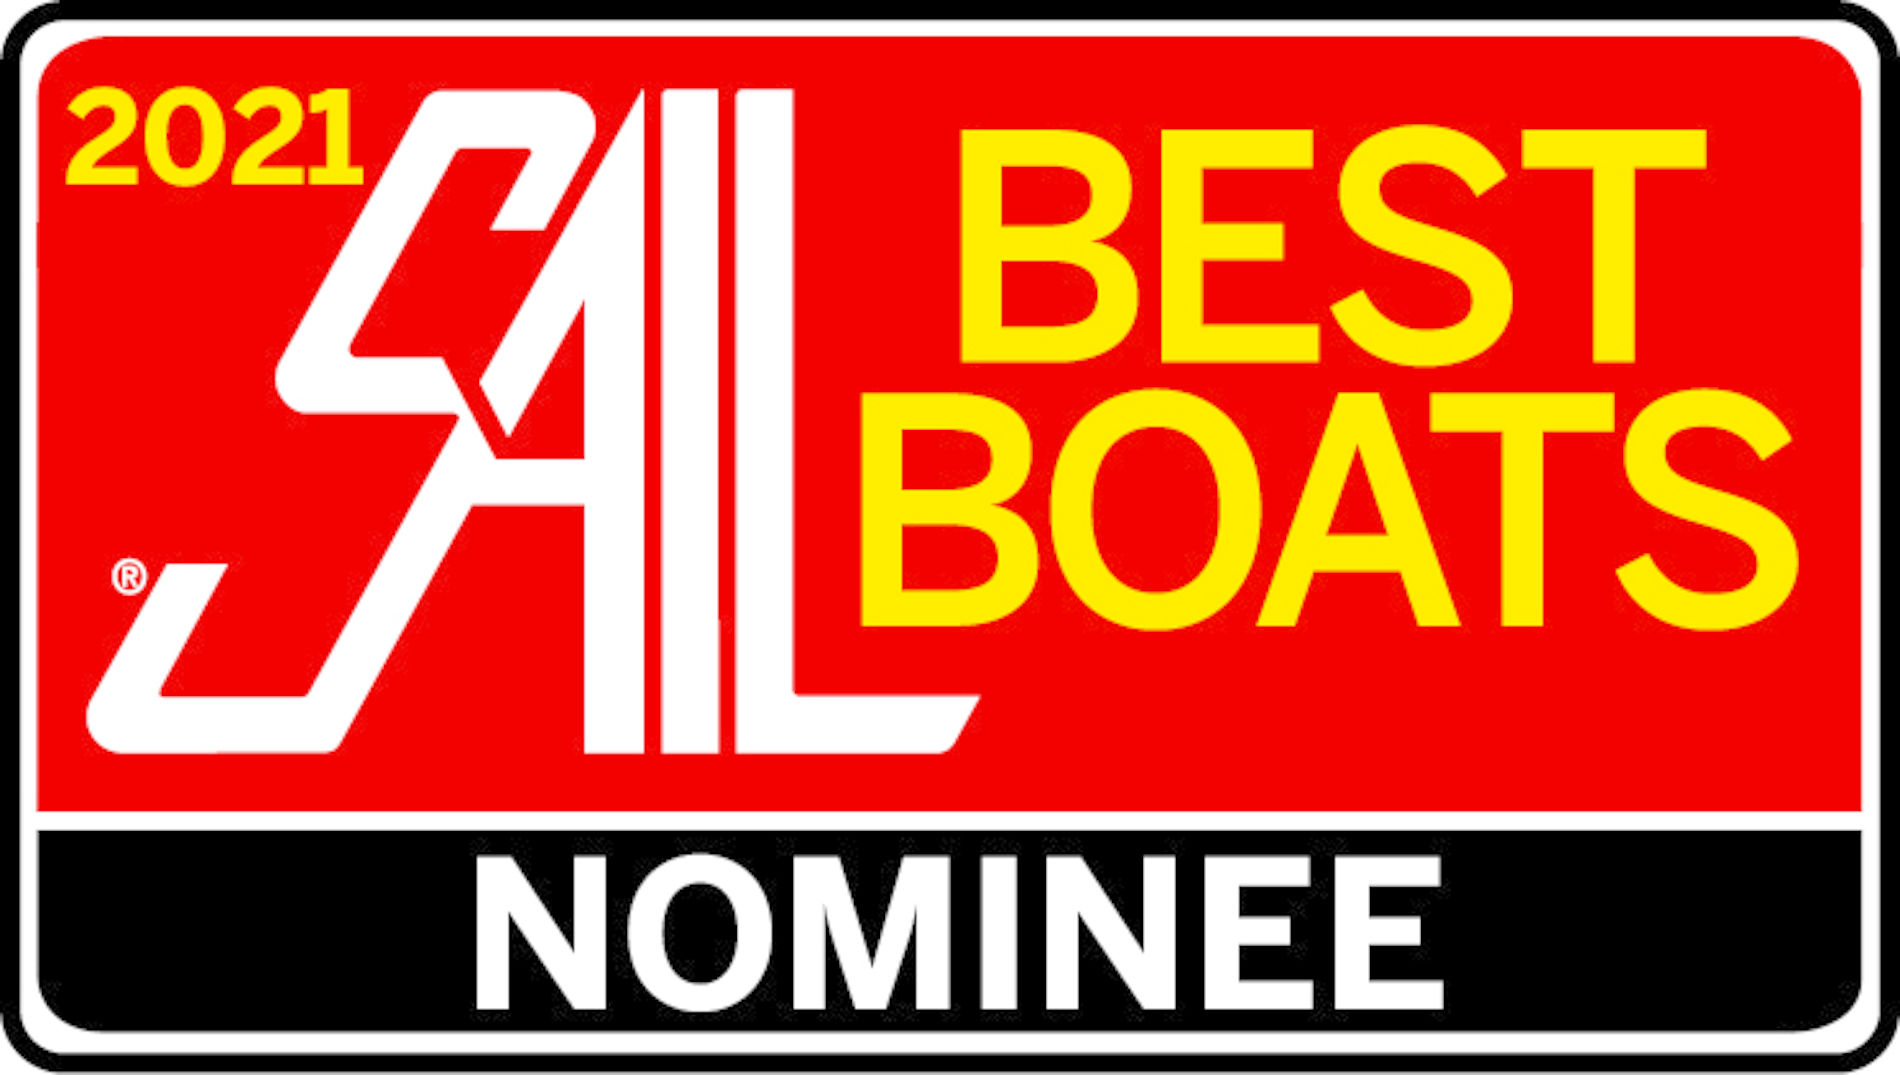 Hallberg-Rassy 340 nominated for Best Boats 2021 in the USA